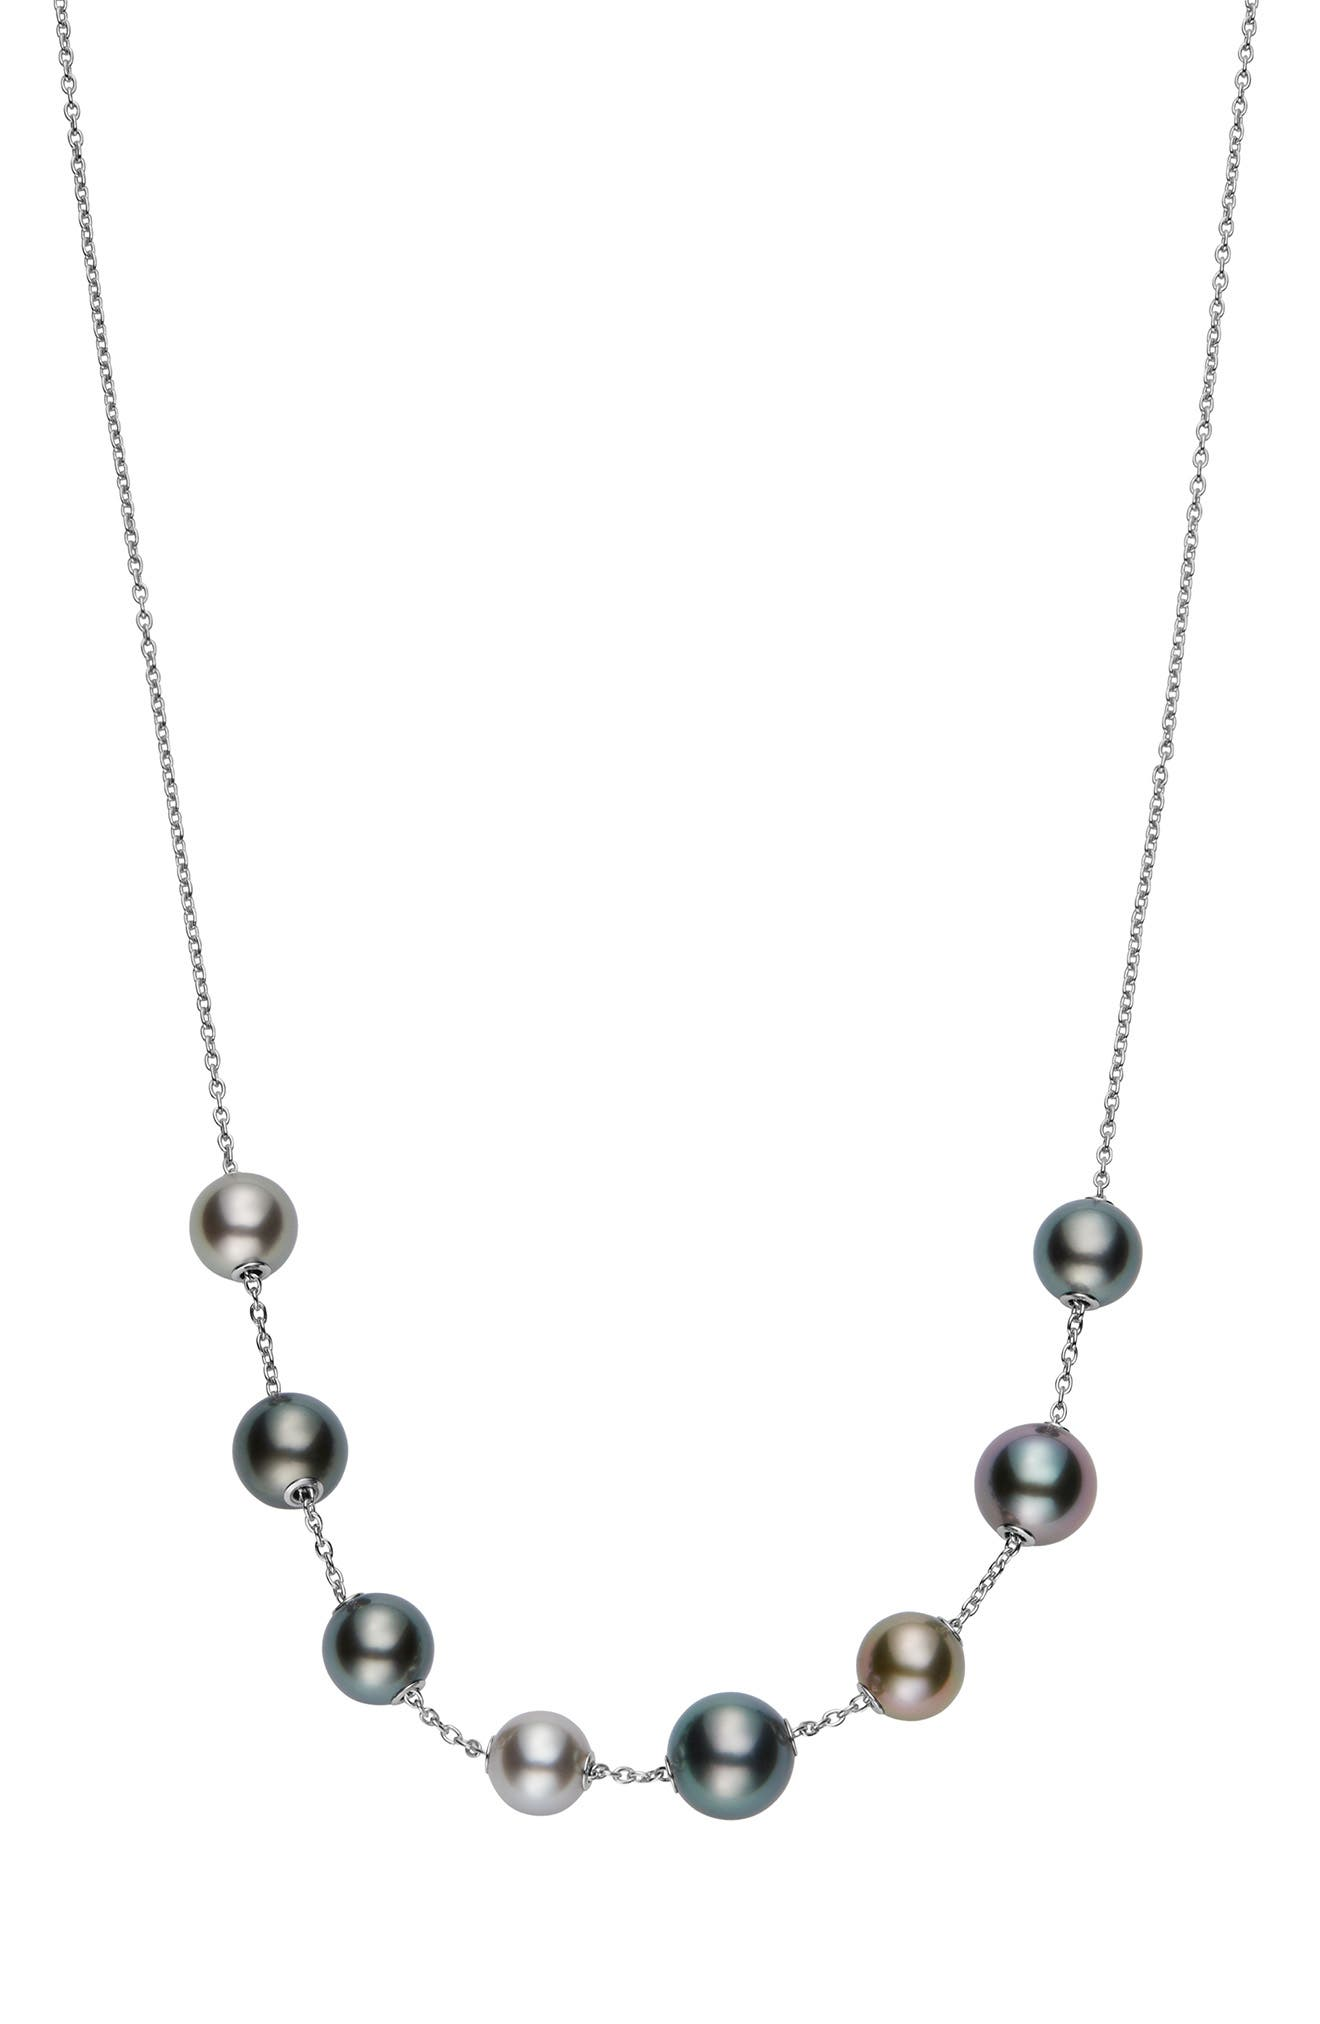 Pearls In Motion Black South Sea Cultured Pearl Necklace